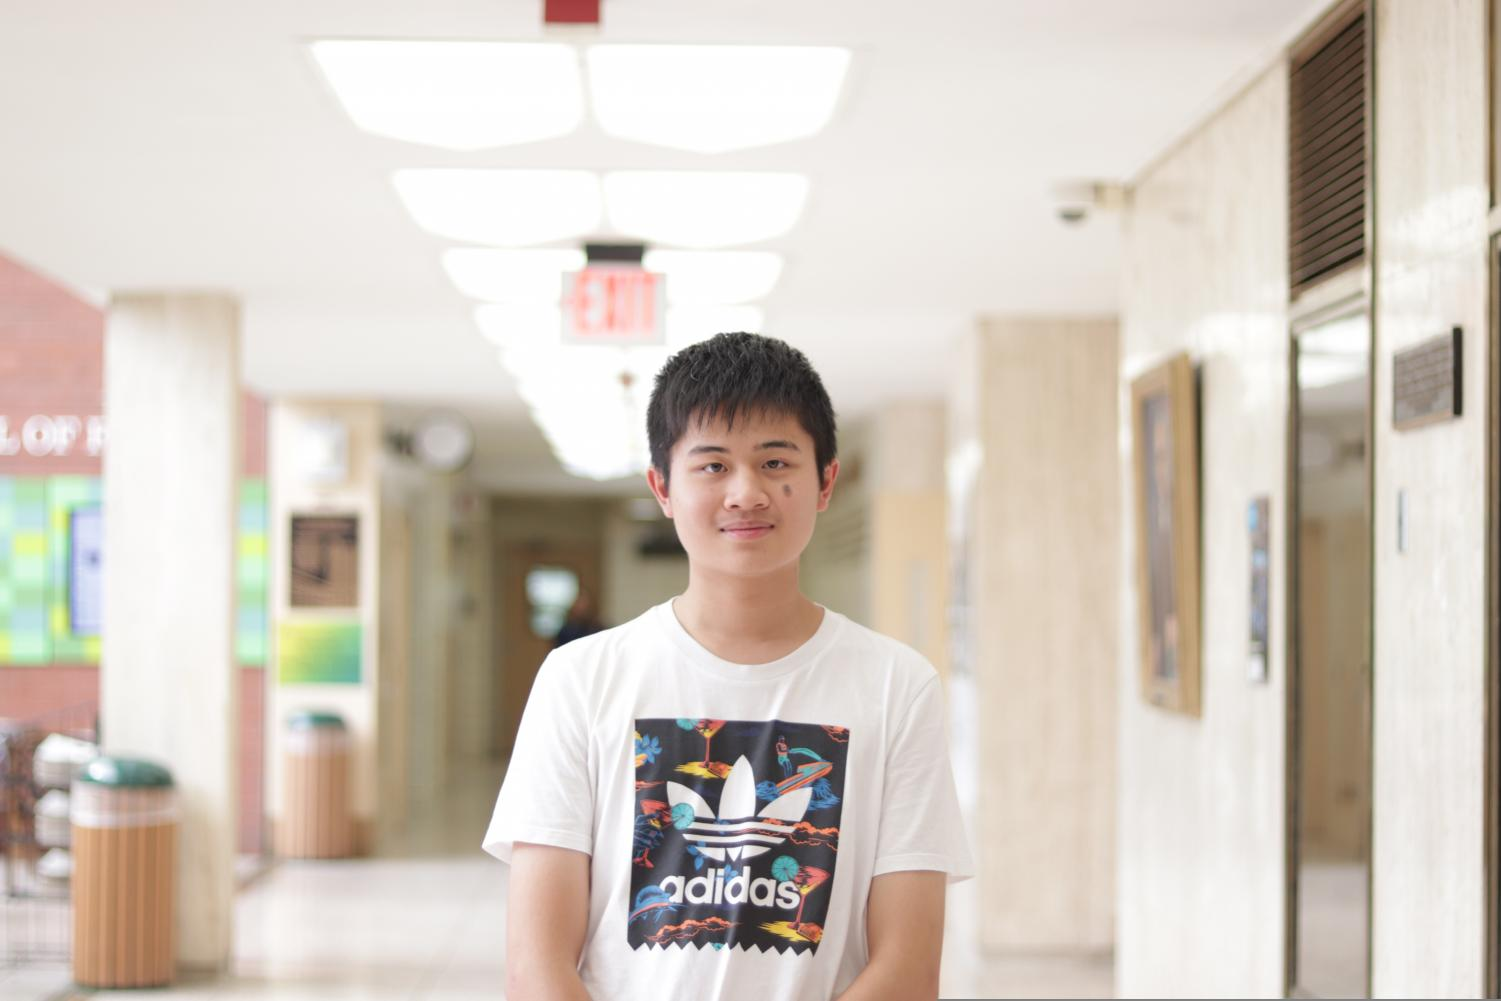 """Anthony Lim '21, whose parents' hometowns are affected by the forest fires, believes """"more attention could definitely help find a better solution for this situation."""""""